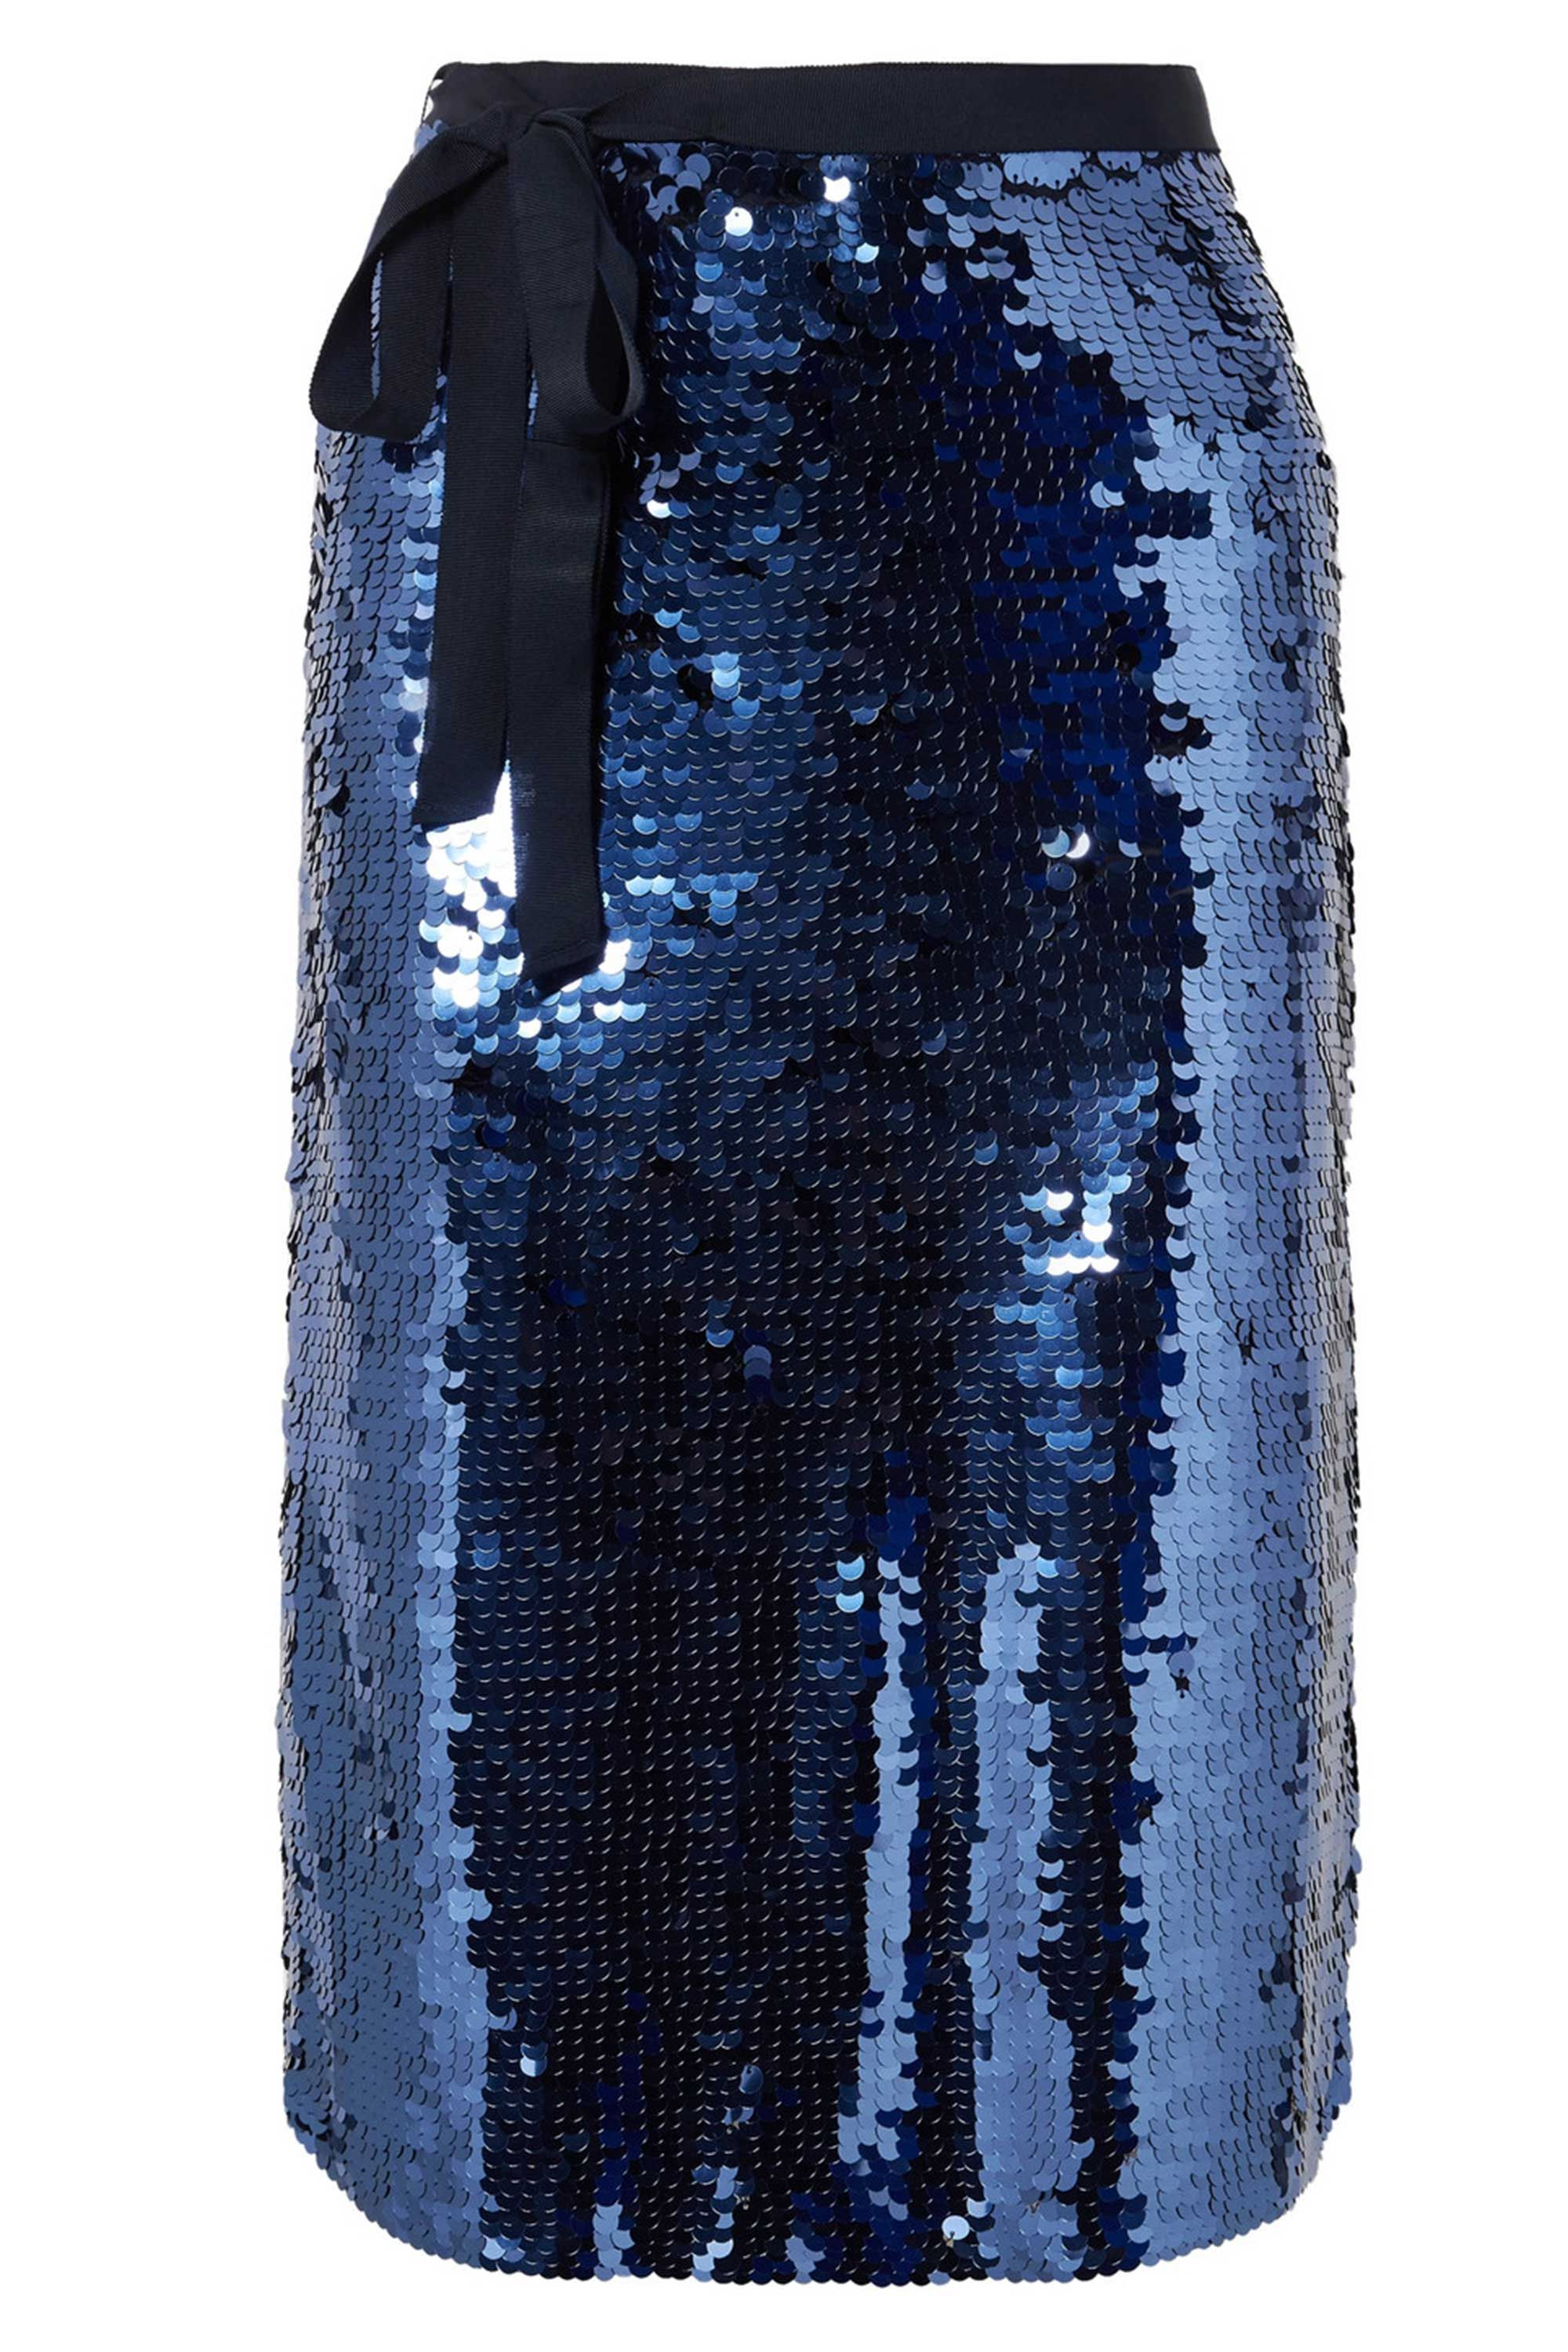 14463e7d27 10 sequinned skirts to get you in the party spirit - sequin skirts for  Christmas